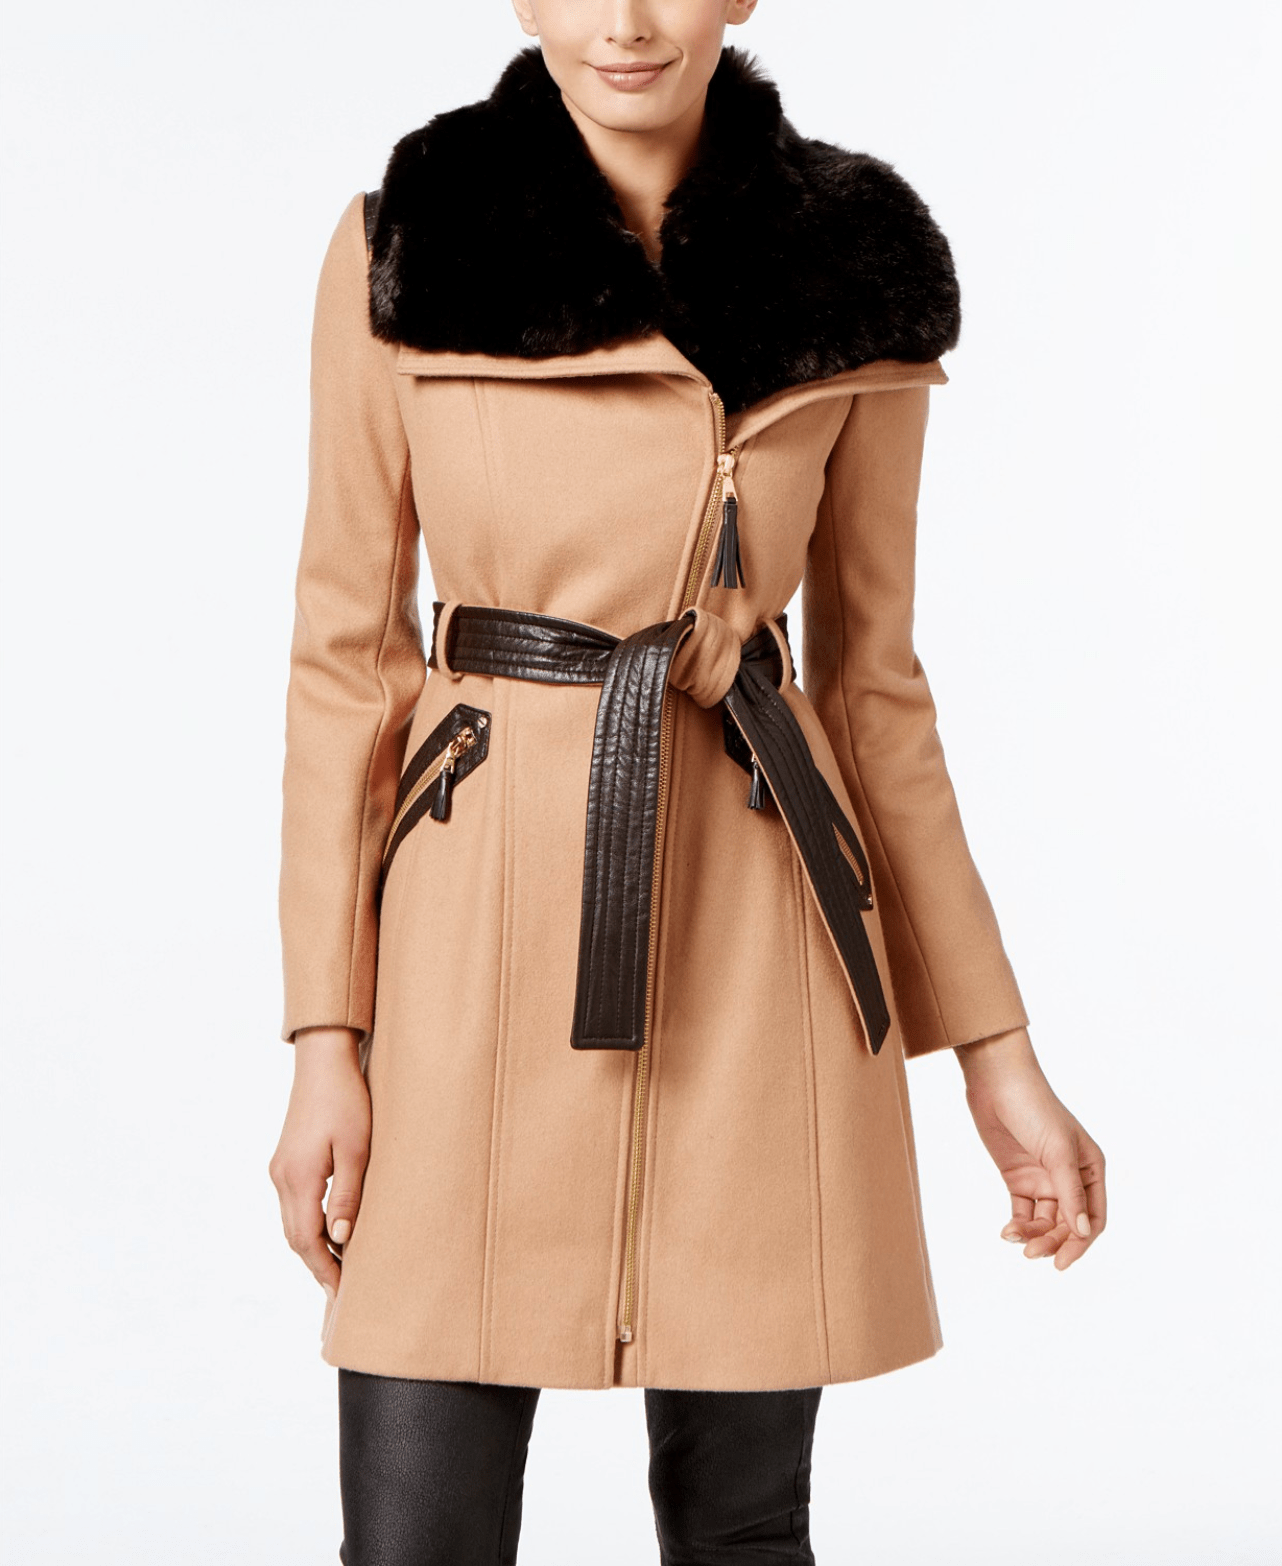 Via Spiga Asymmetrical Belted Coat